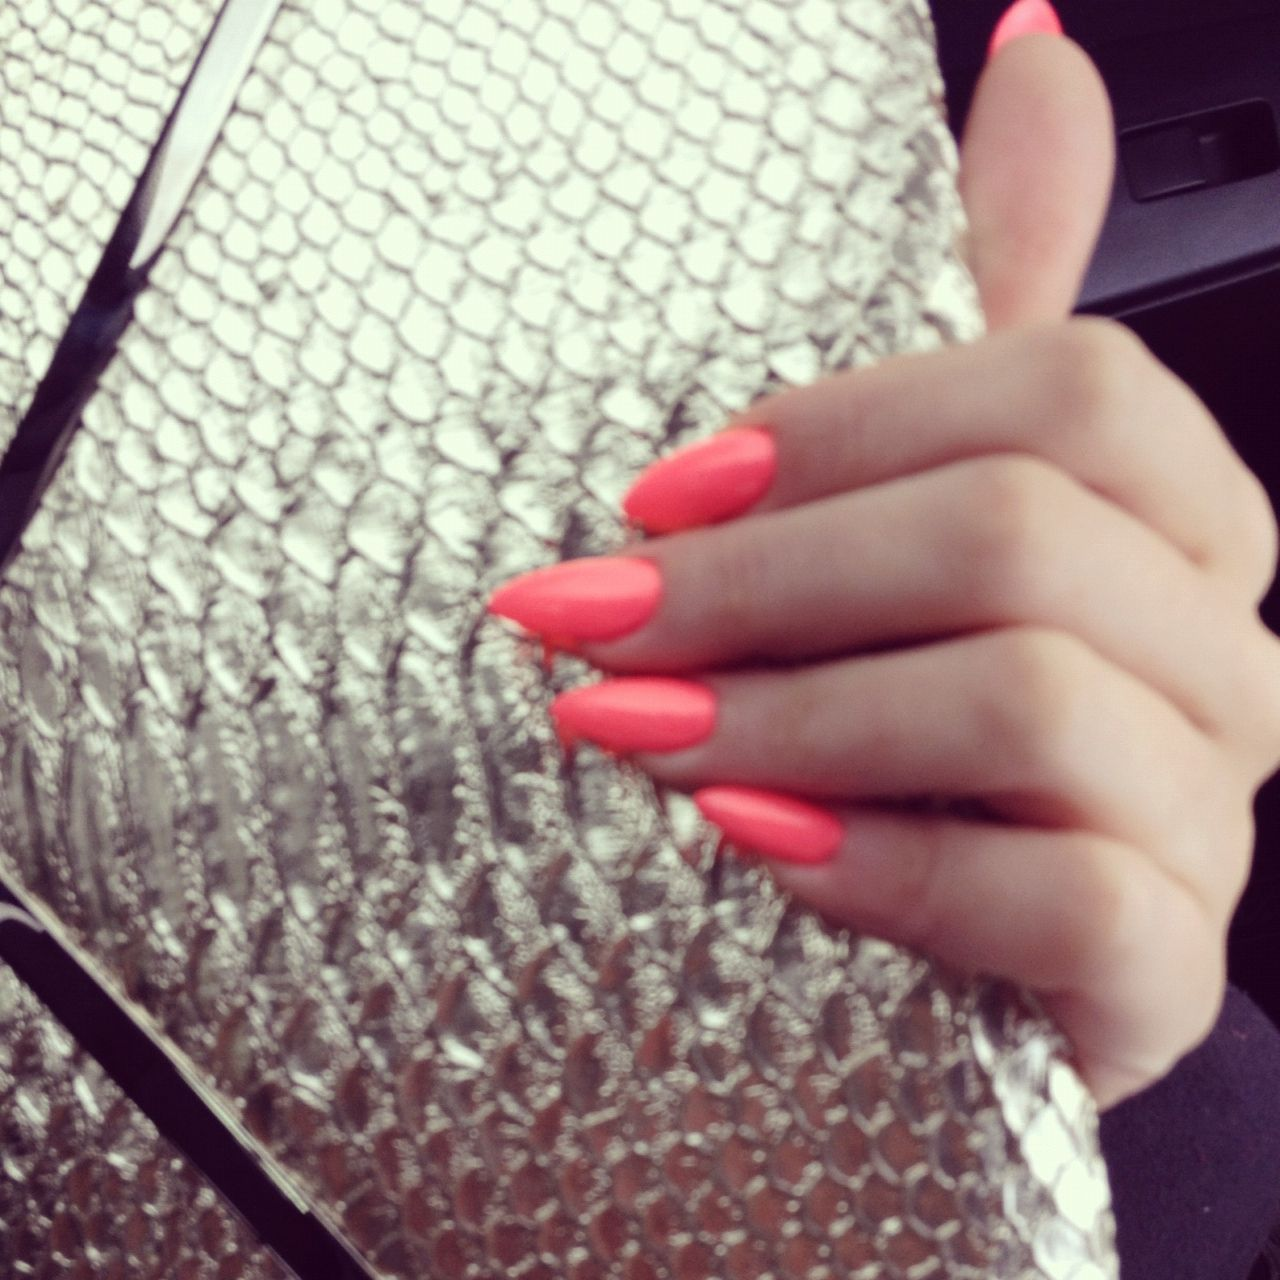 Obsessed with the coral nails, but the stiletto nails will take a while to get used to.